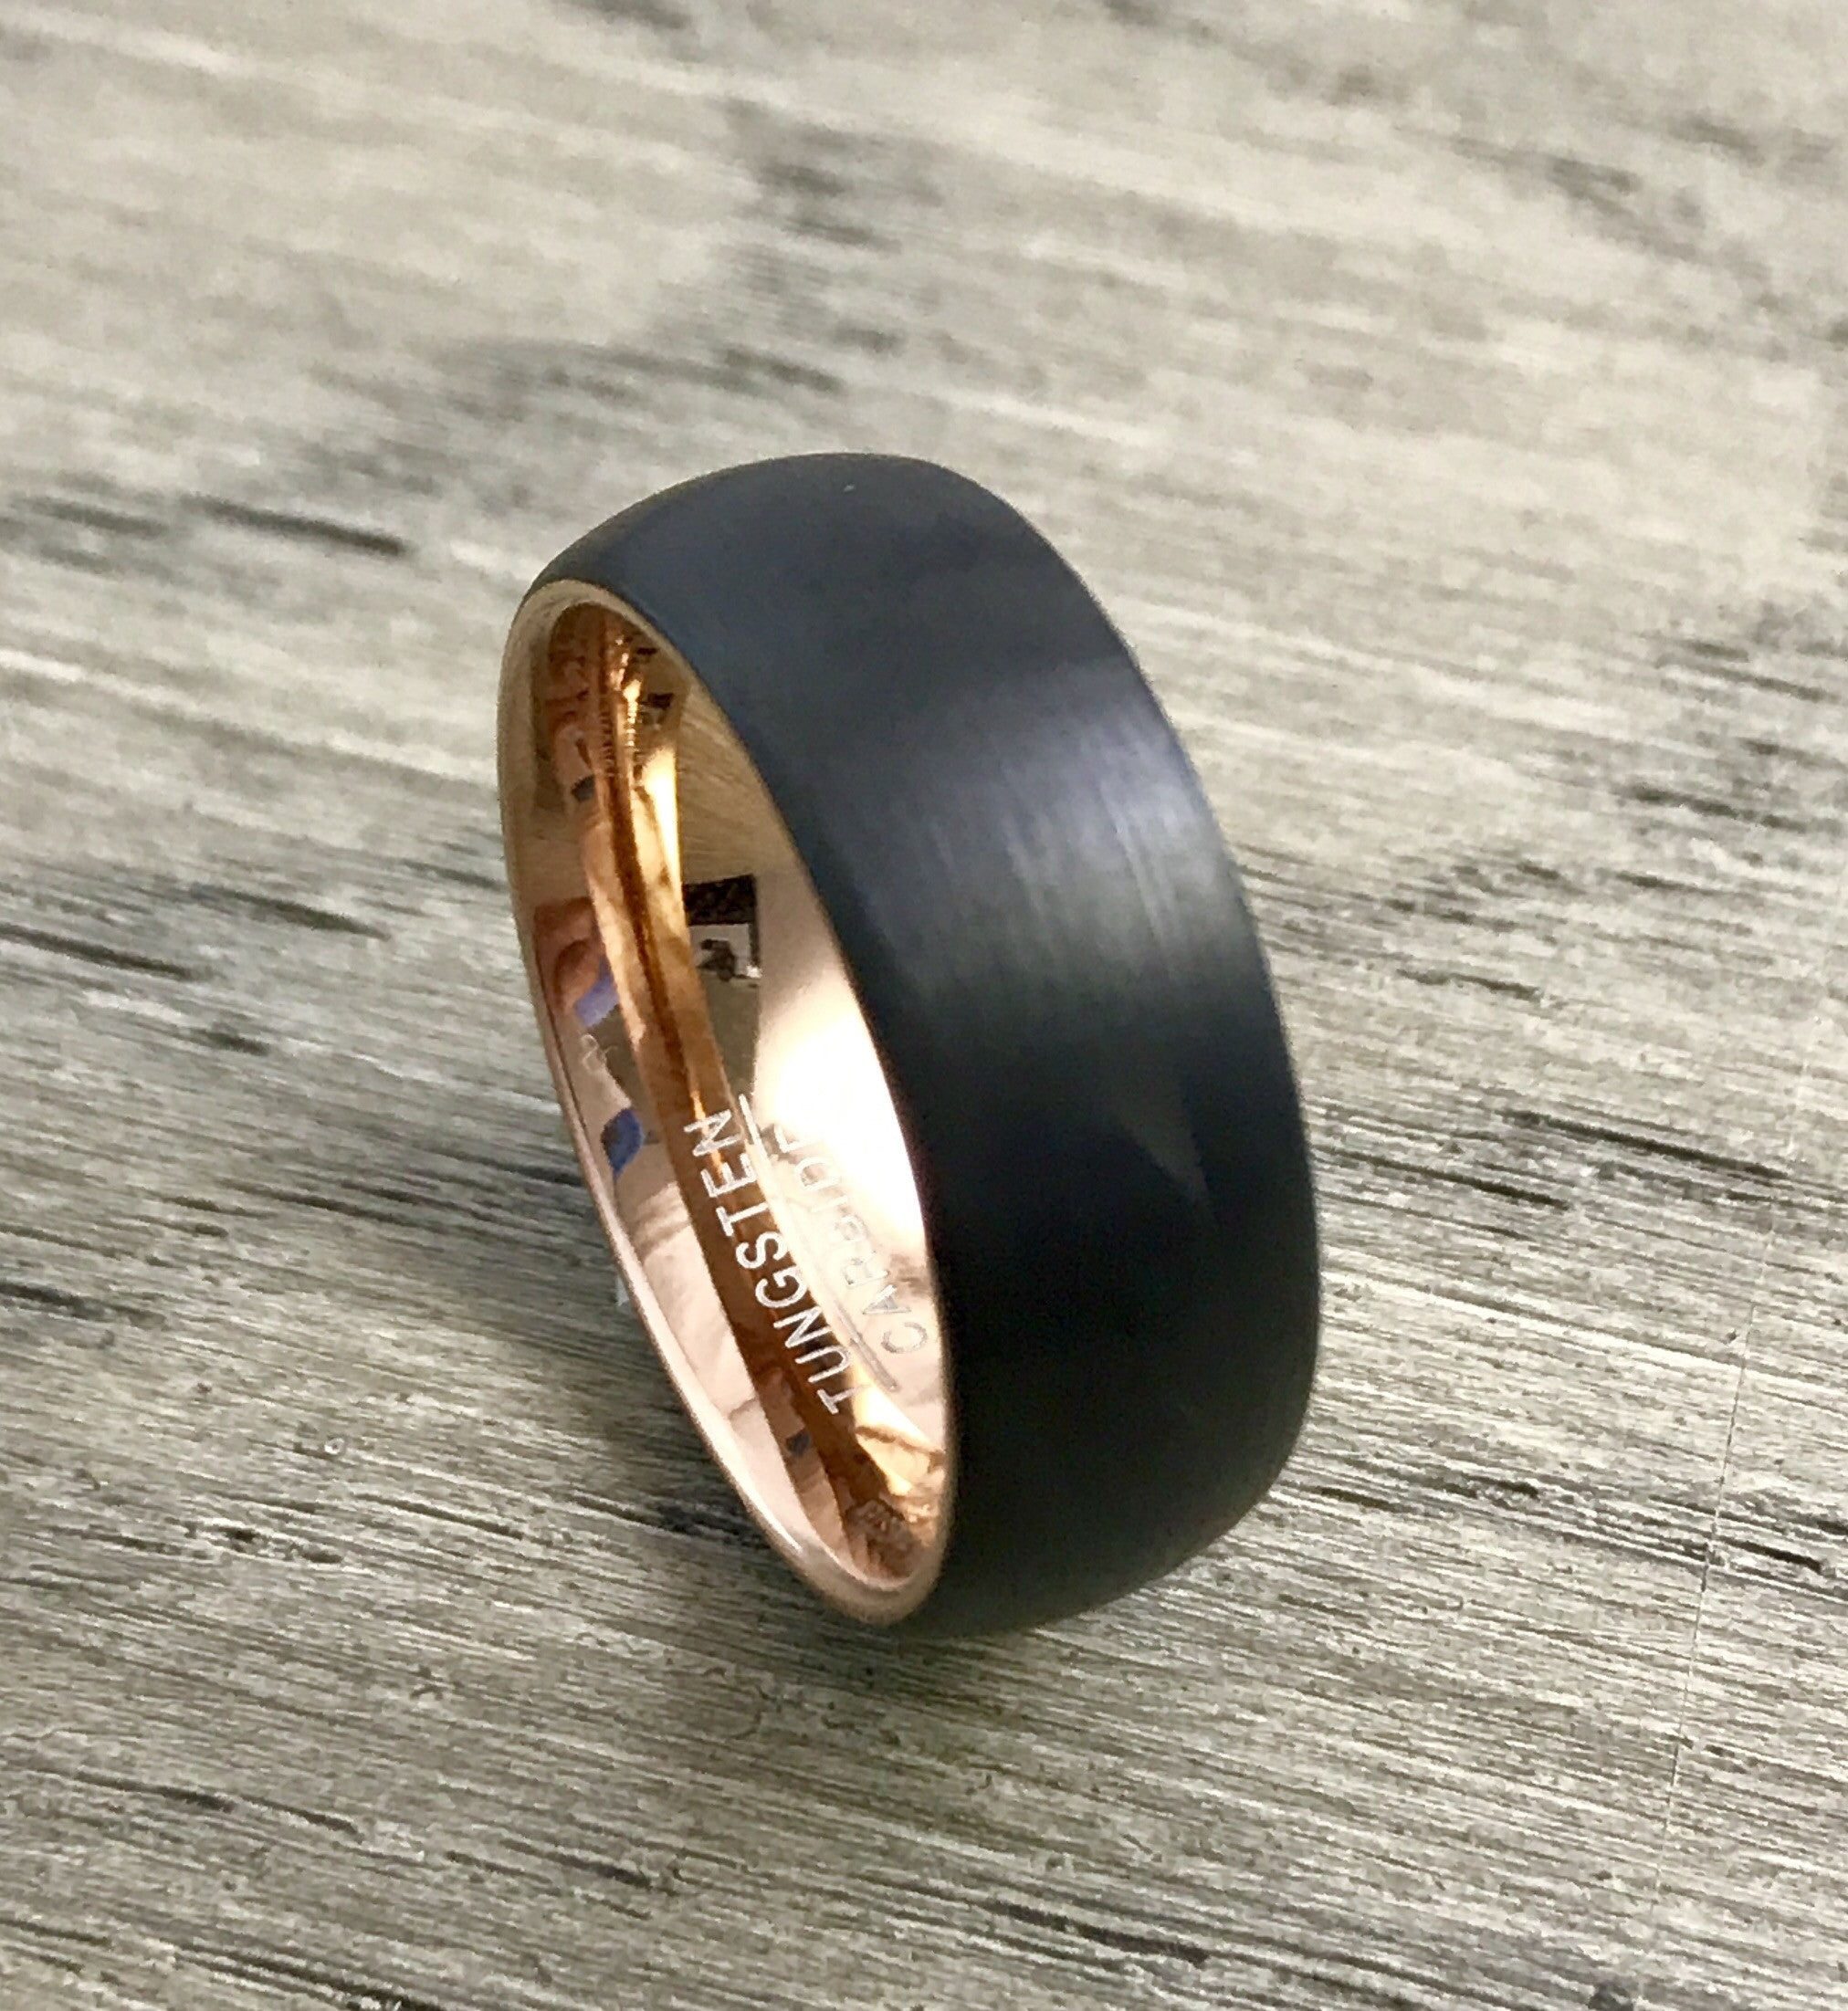 elegant deco rikof black art style wedding com band inside of ring luxury gold rings hills inspirations bands and